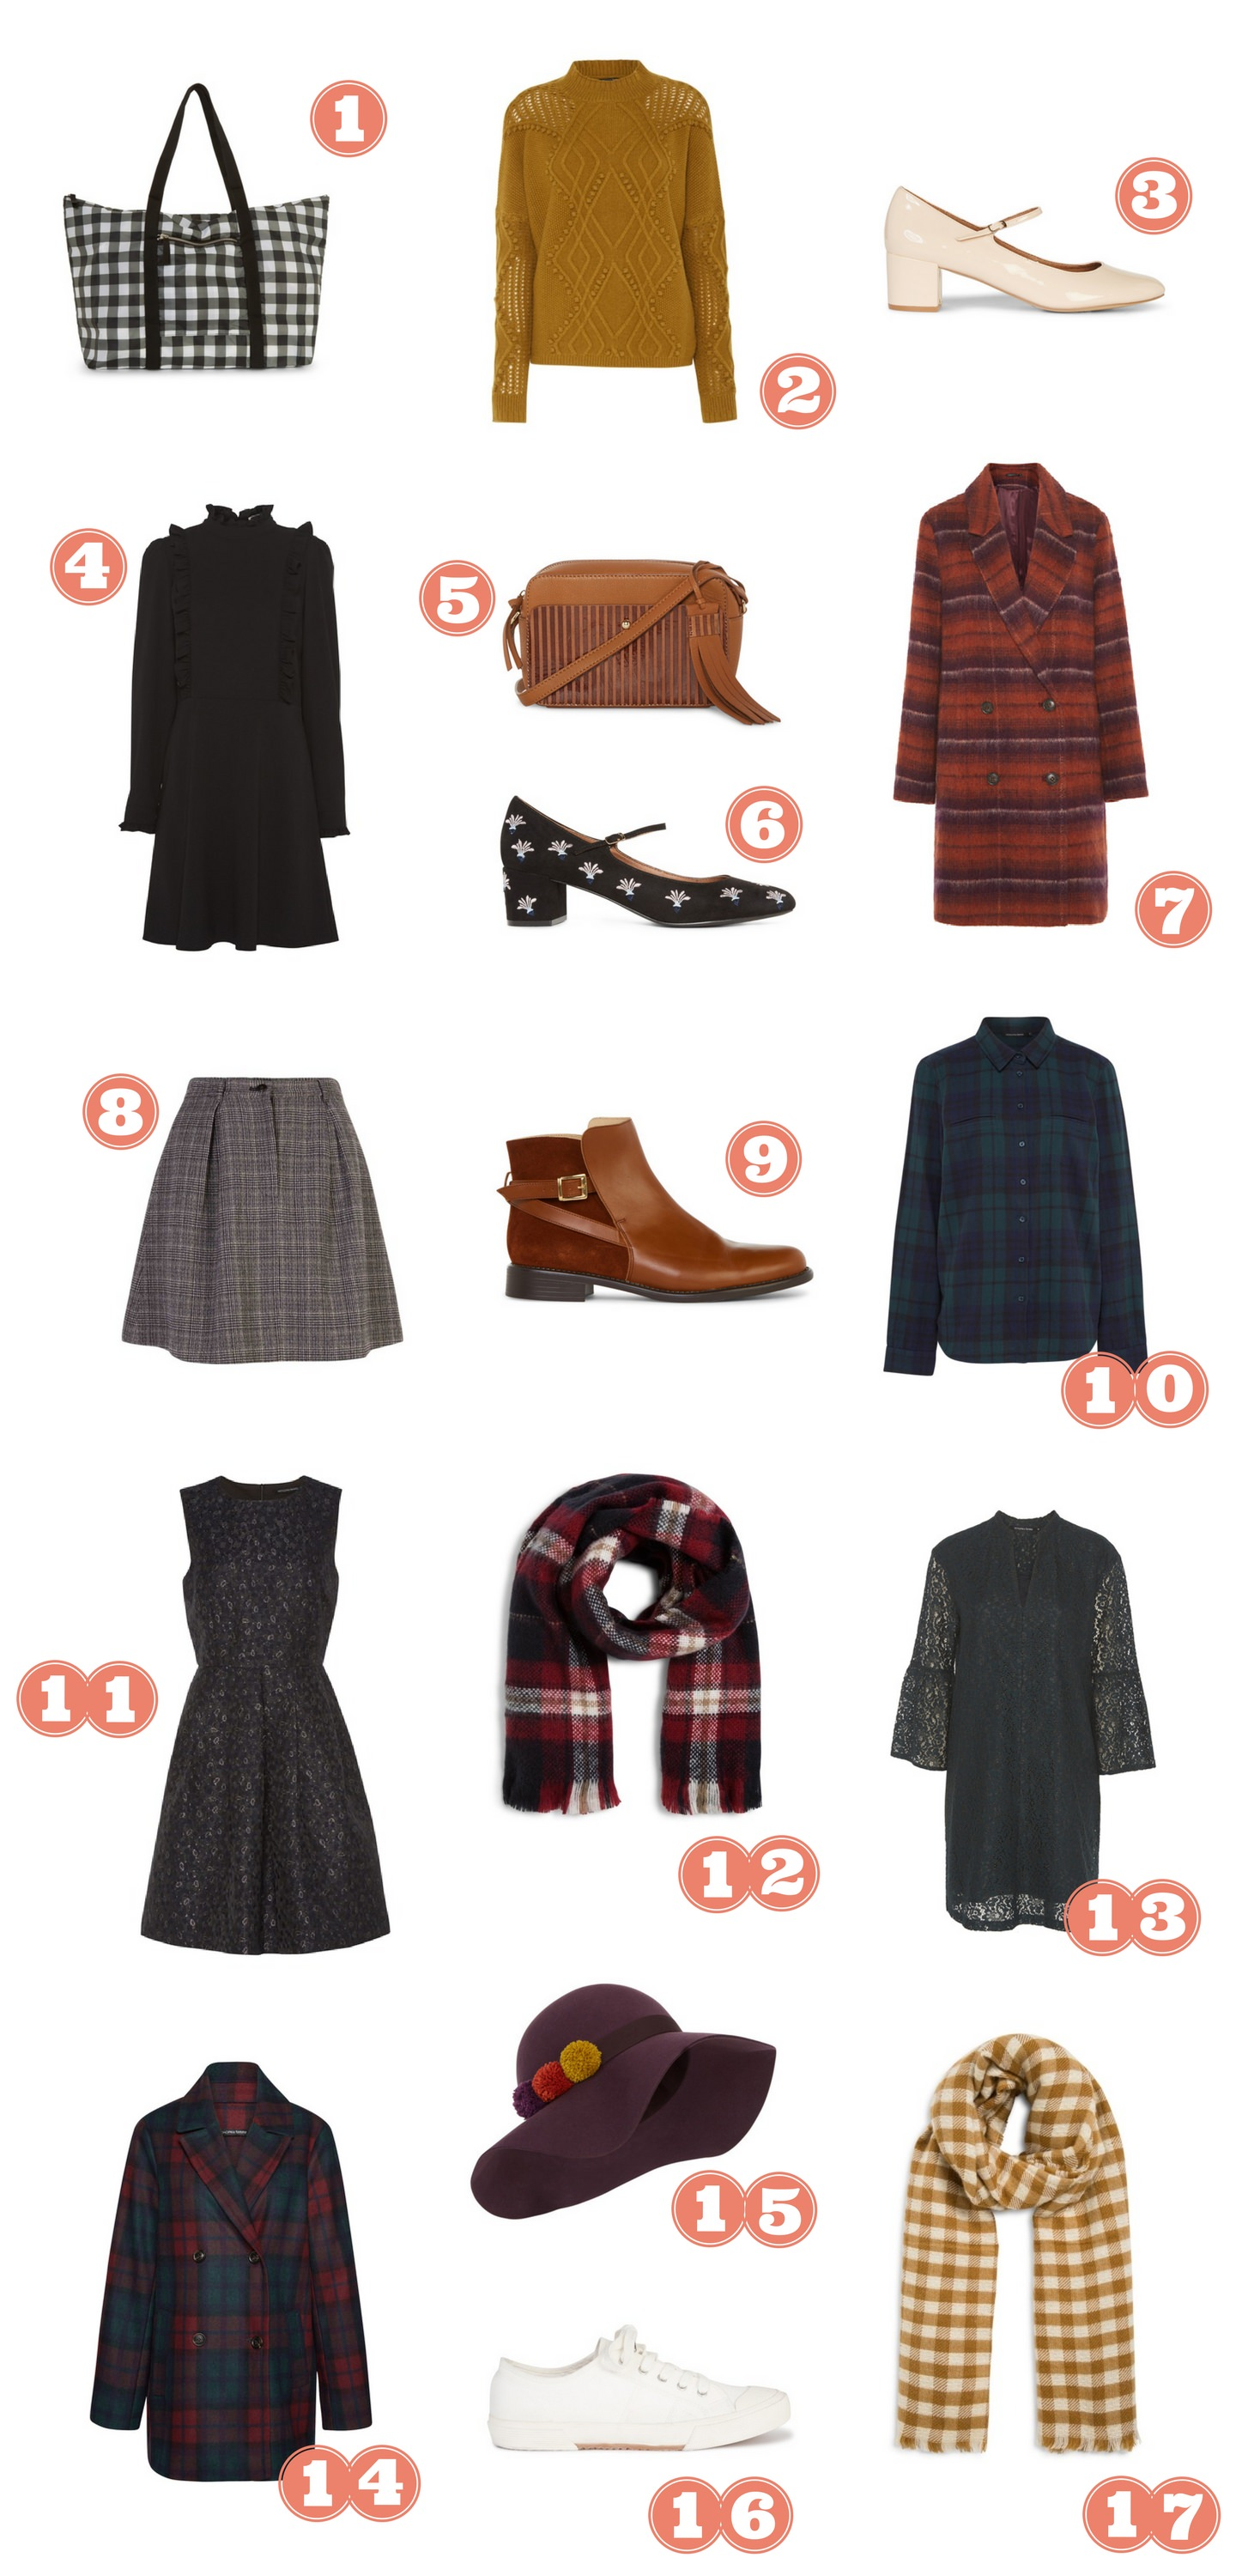 Blog-Mode-And-The-City-Lifestyle-wishlist-soldes-monoprix0